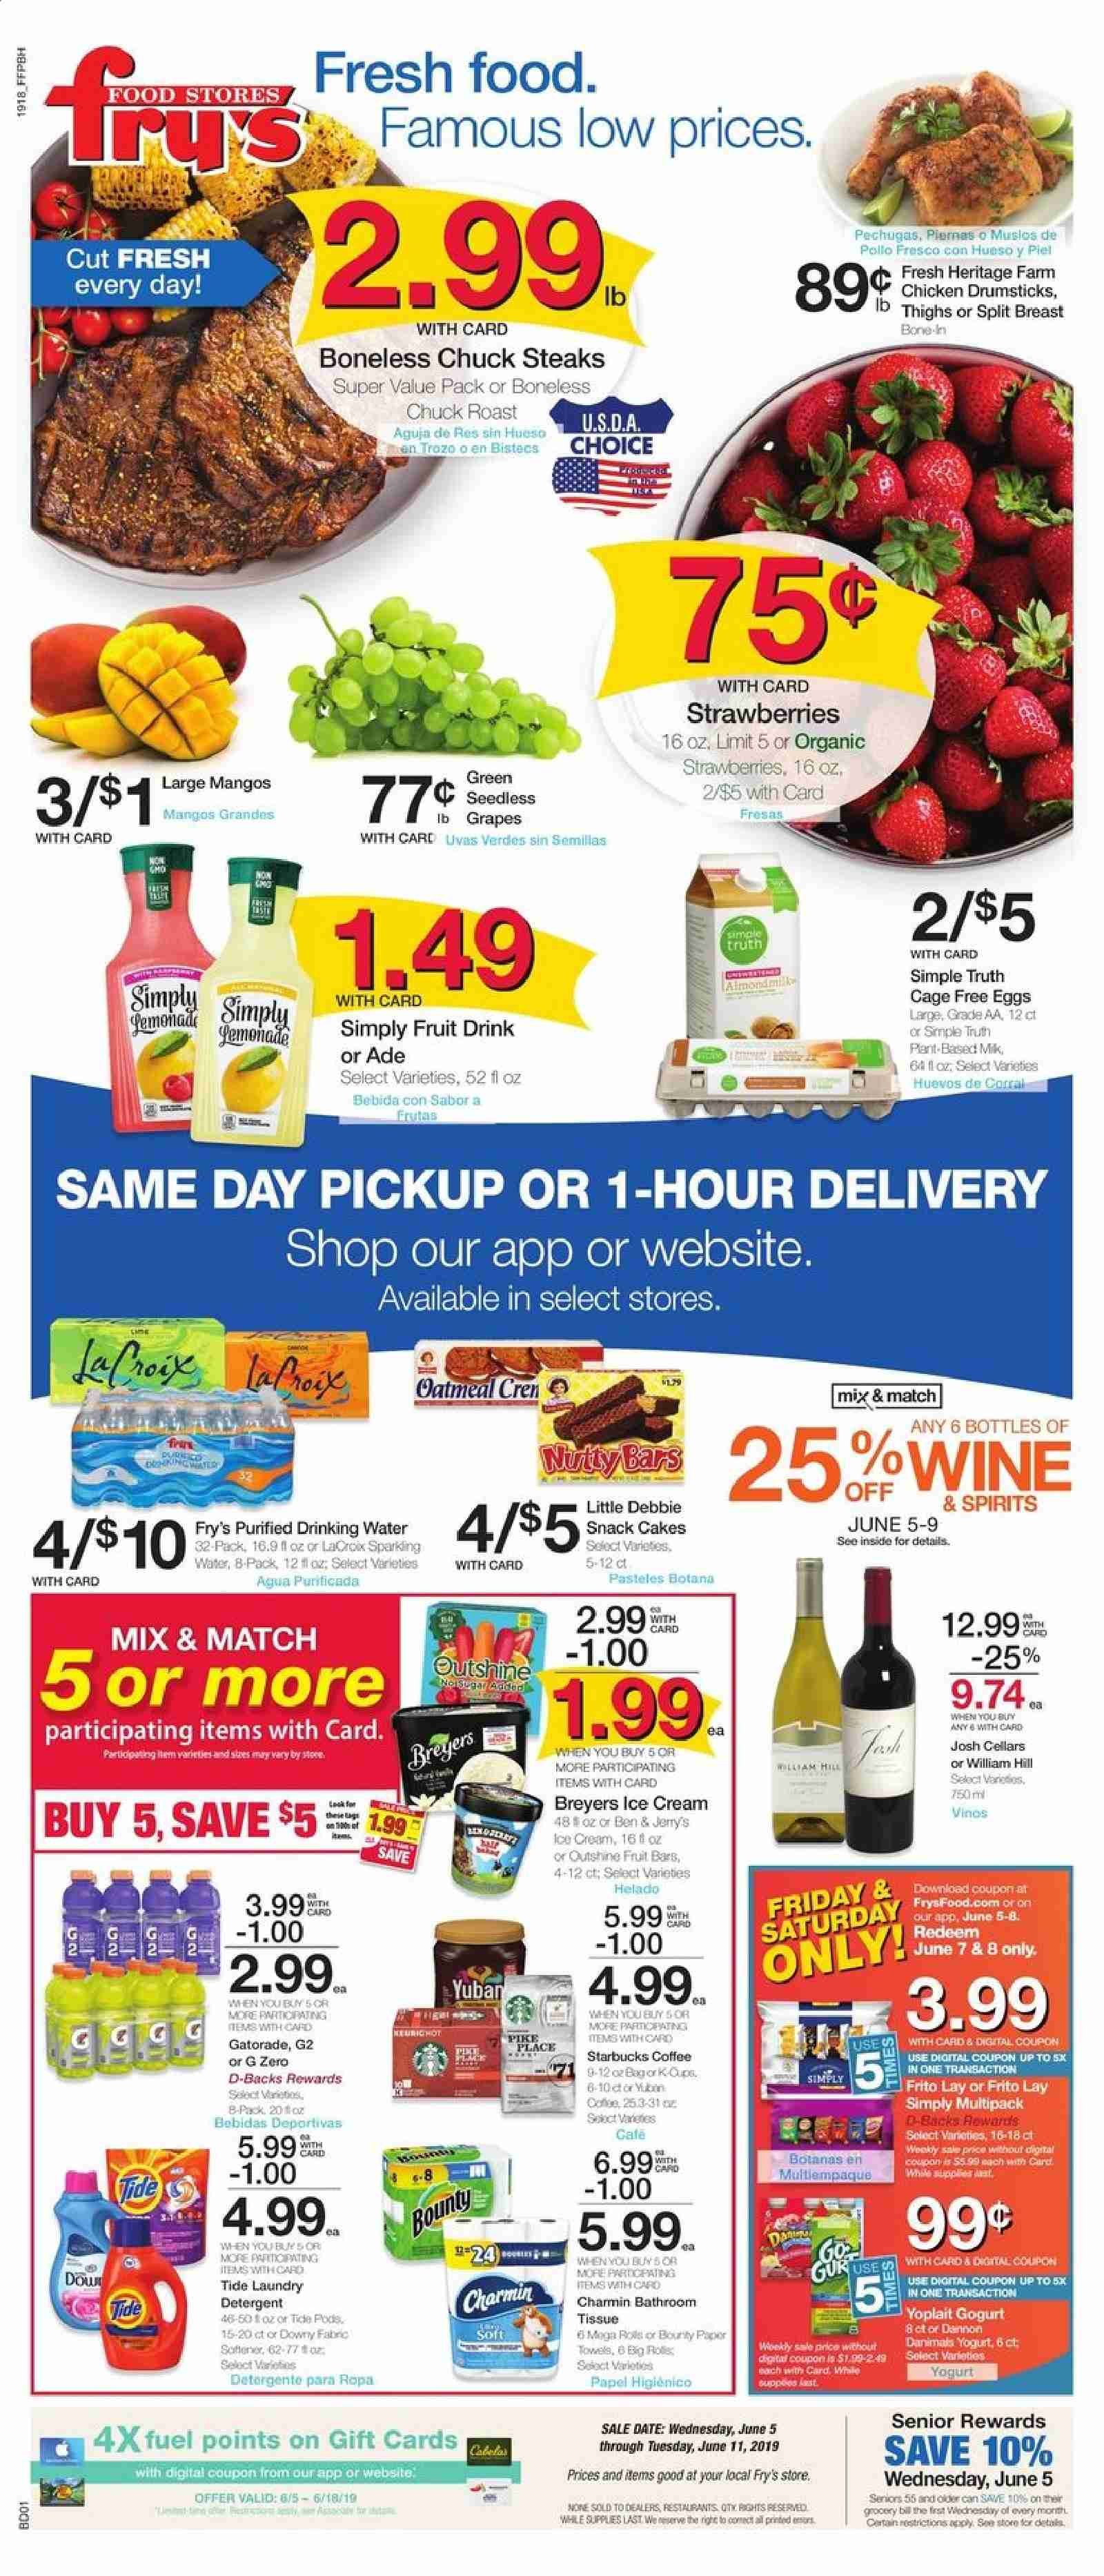 Fry's Flyer - 06.05.2019 - 06.11.2019 - Sales products - grapes, mango, strawberries, cake, eggs, ice cream, Bounty, snack, oatmeal, fruit drink, water, coffee, chicken, chicken legs, detergent, Tide, laundry detergent, towel, Starbucks. Page 1.